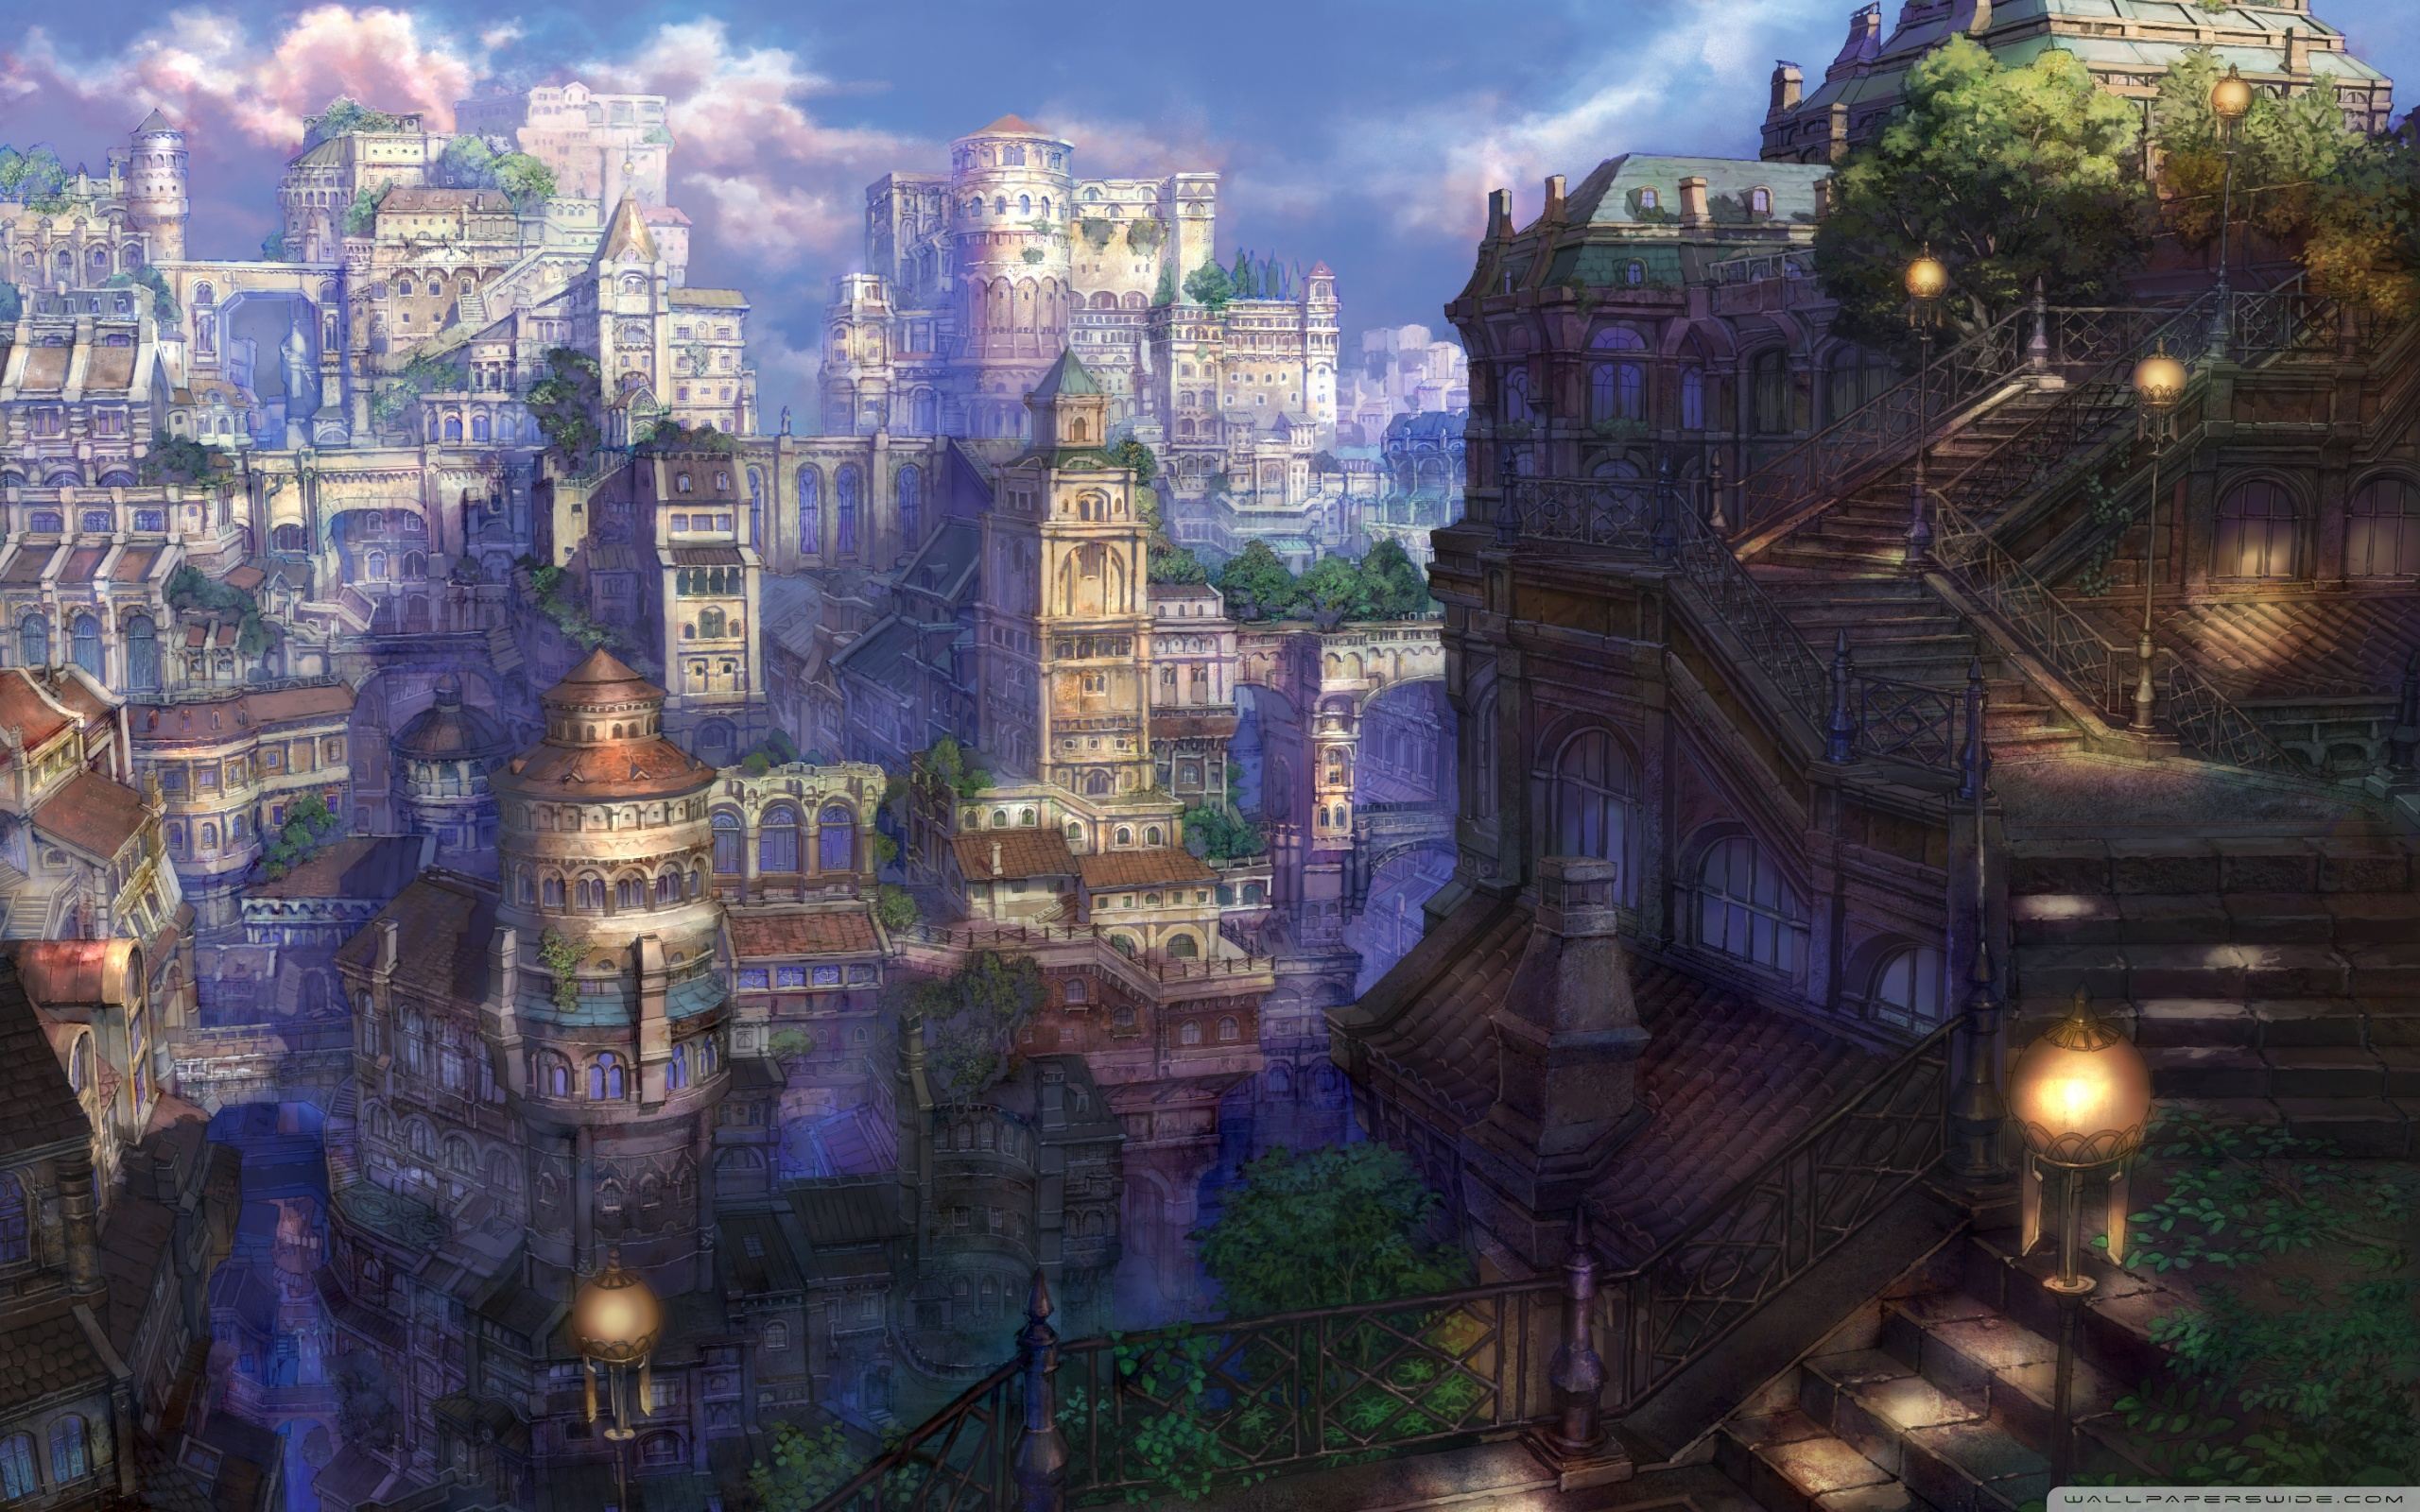 Fantasy City Wallpaper Hd: Fantasy Town 4K HD Desktop Wallpaper For 4K Ultra HD TV